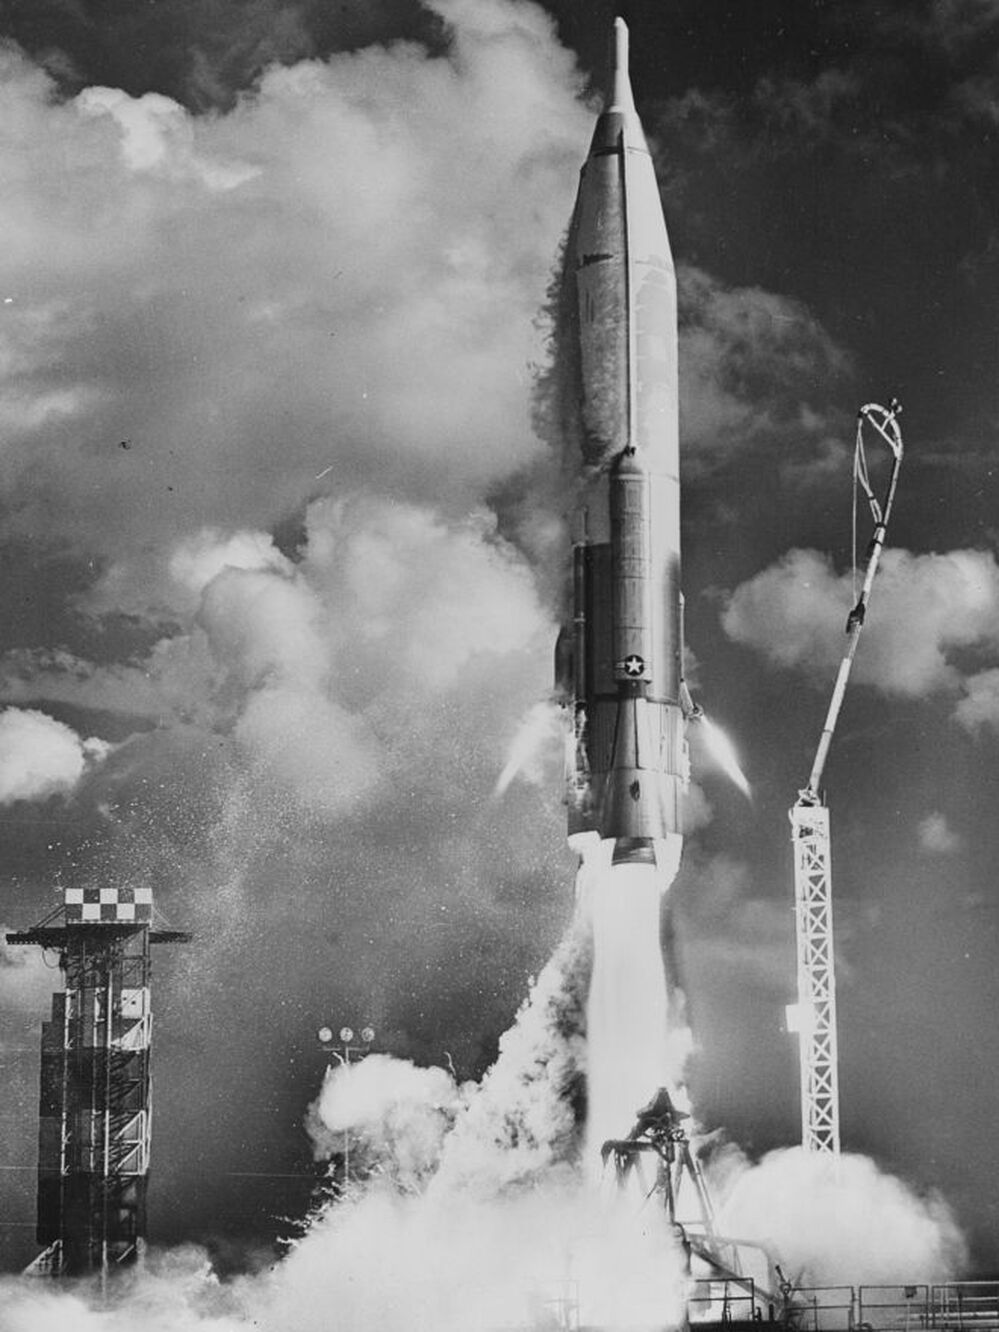 An Atlas missile is launched from Cape Canaveral, Fla. in October 1964. Cape Canaveral has been the site of numerous launch failures as the United States developed missile and rocket technology.